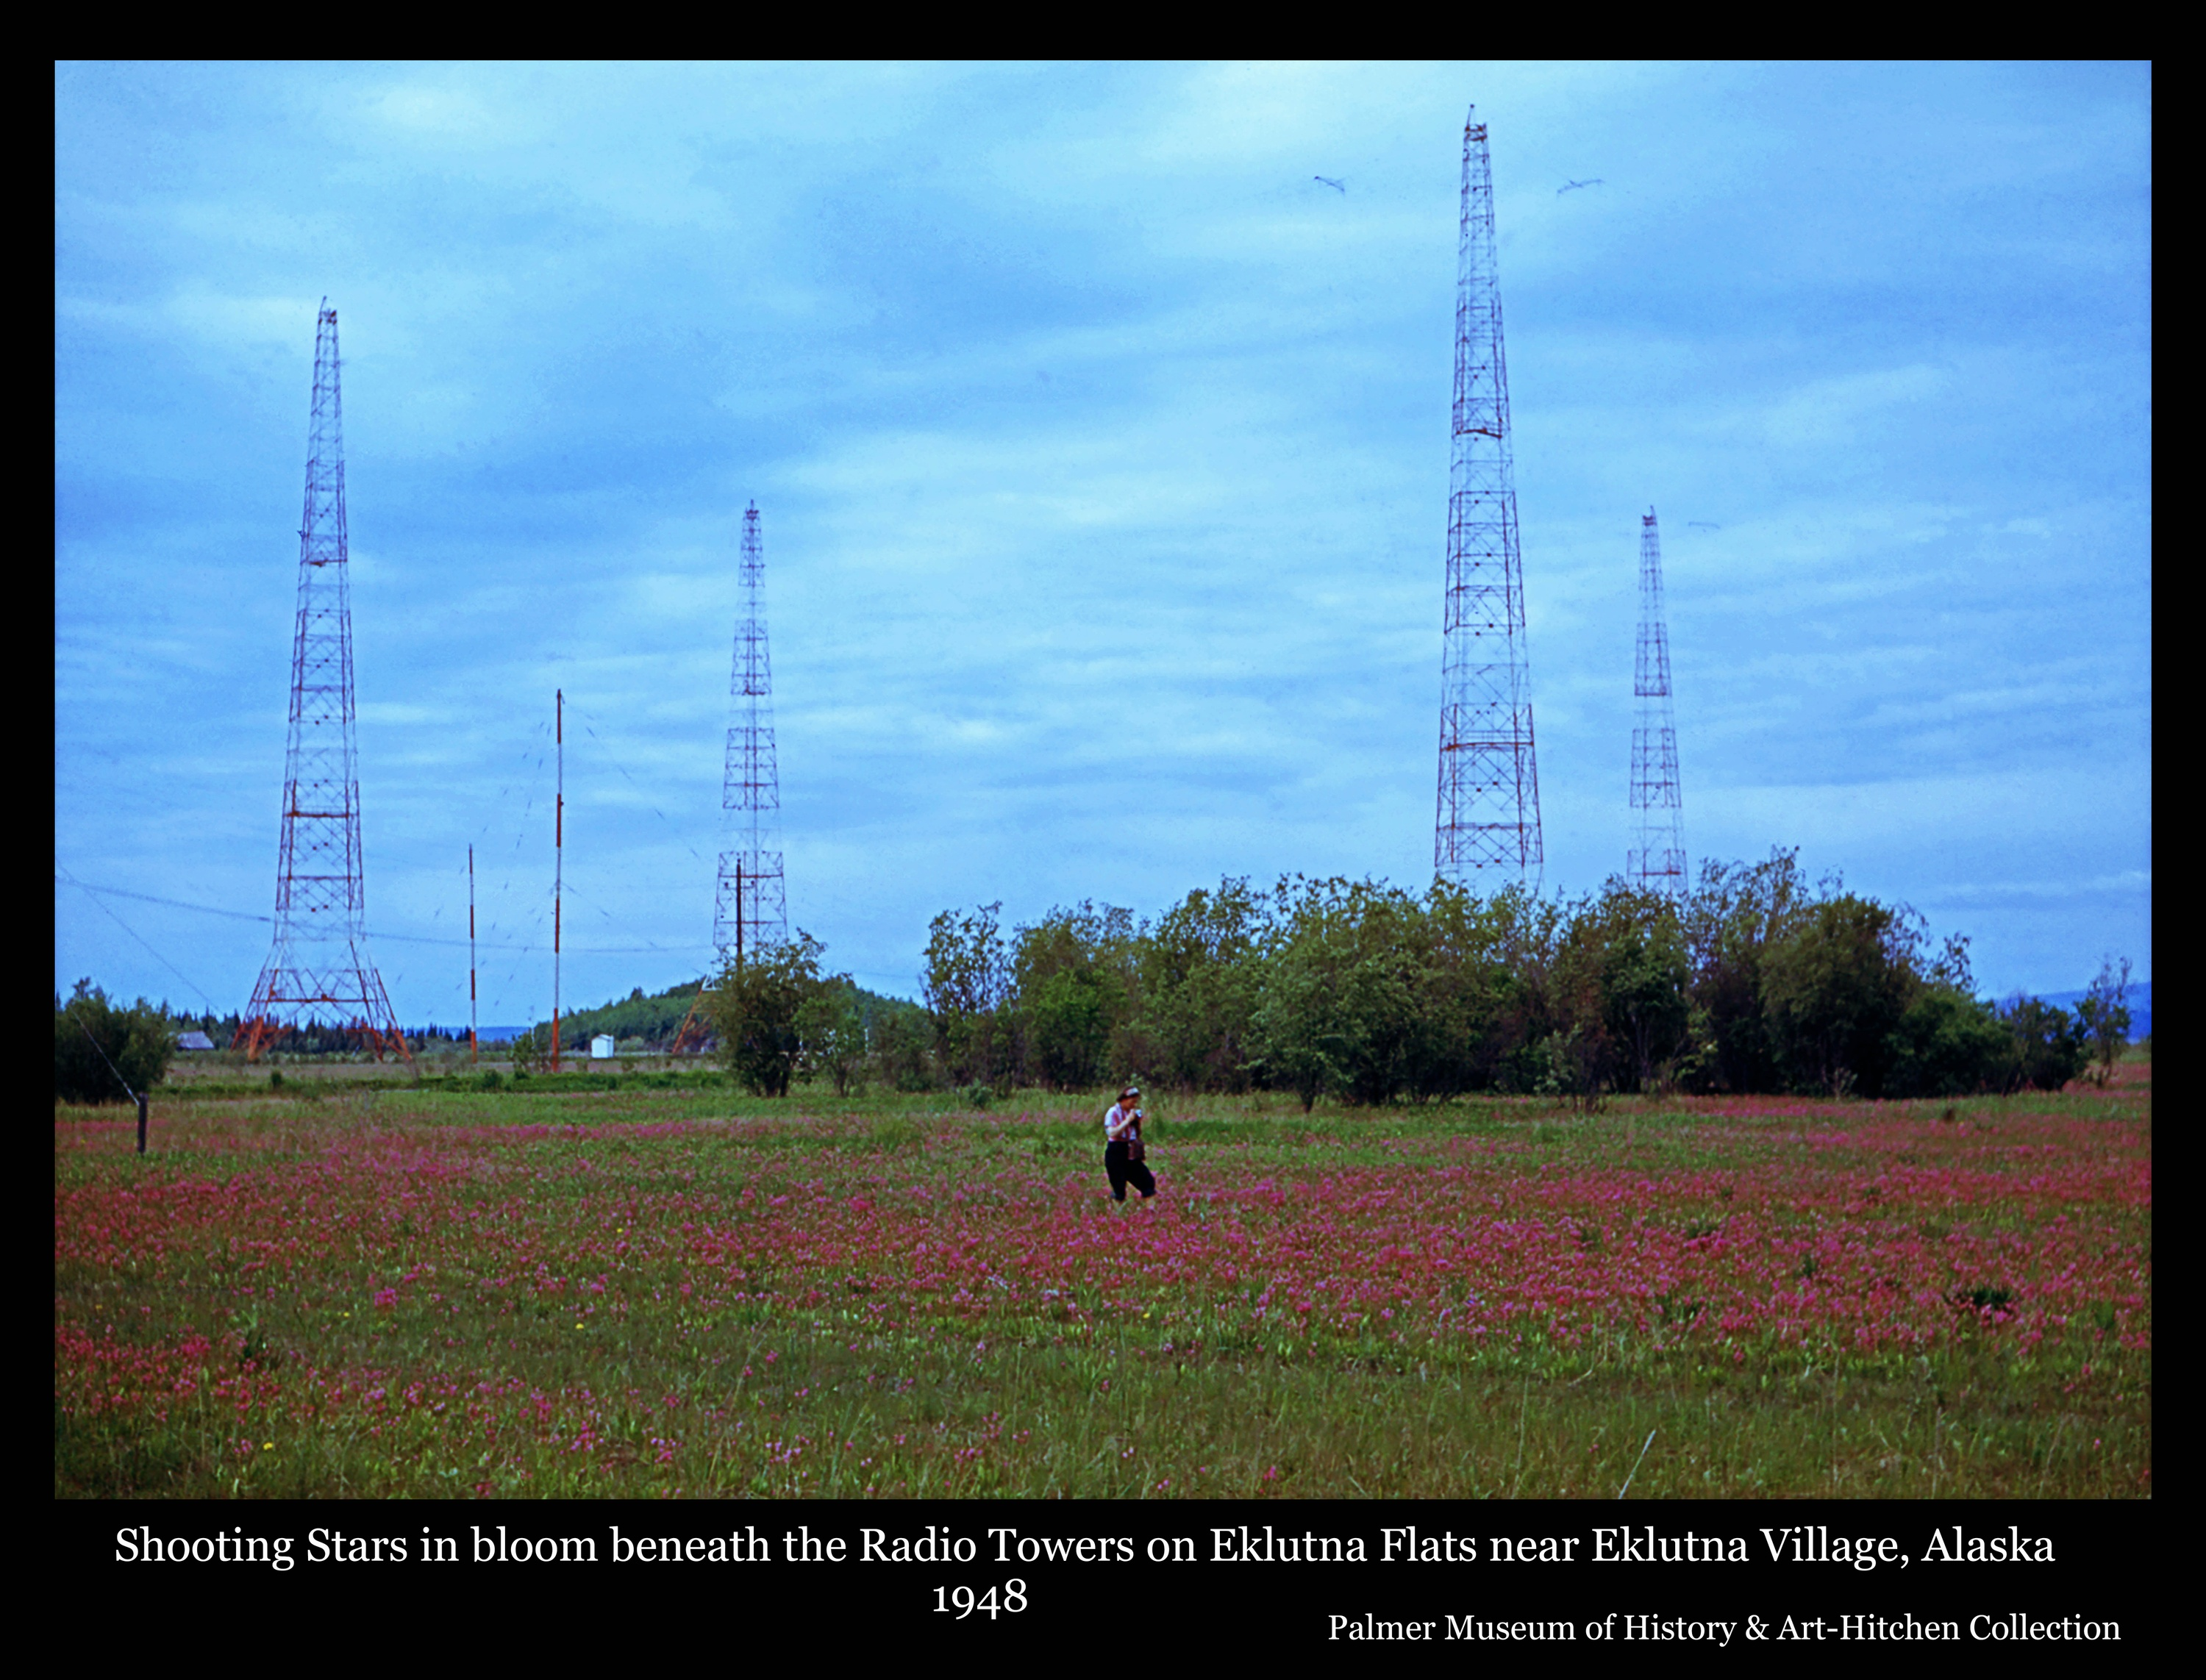 Photo is a color image of a woman standing on the Eklutna Flats among blooming Shooting Star flowers with large metal radio towers rising behind.  A small white building is visible in background next to a small hill.  Another building is partially visible at left.  This was a typical scene in May on the Flats during the 1940's and 50's, on both sides of the road, as the shooting stars and blue iris bloomed.  As willow brush became more prevalent the flowers have continued to be crowded out.